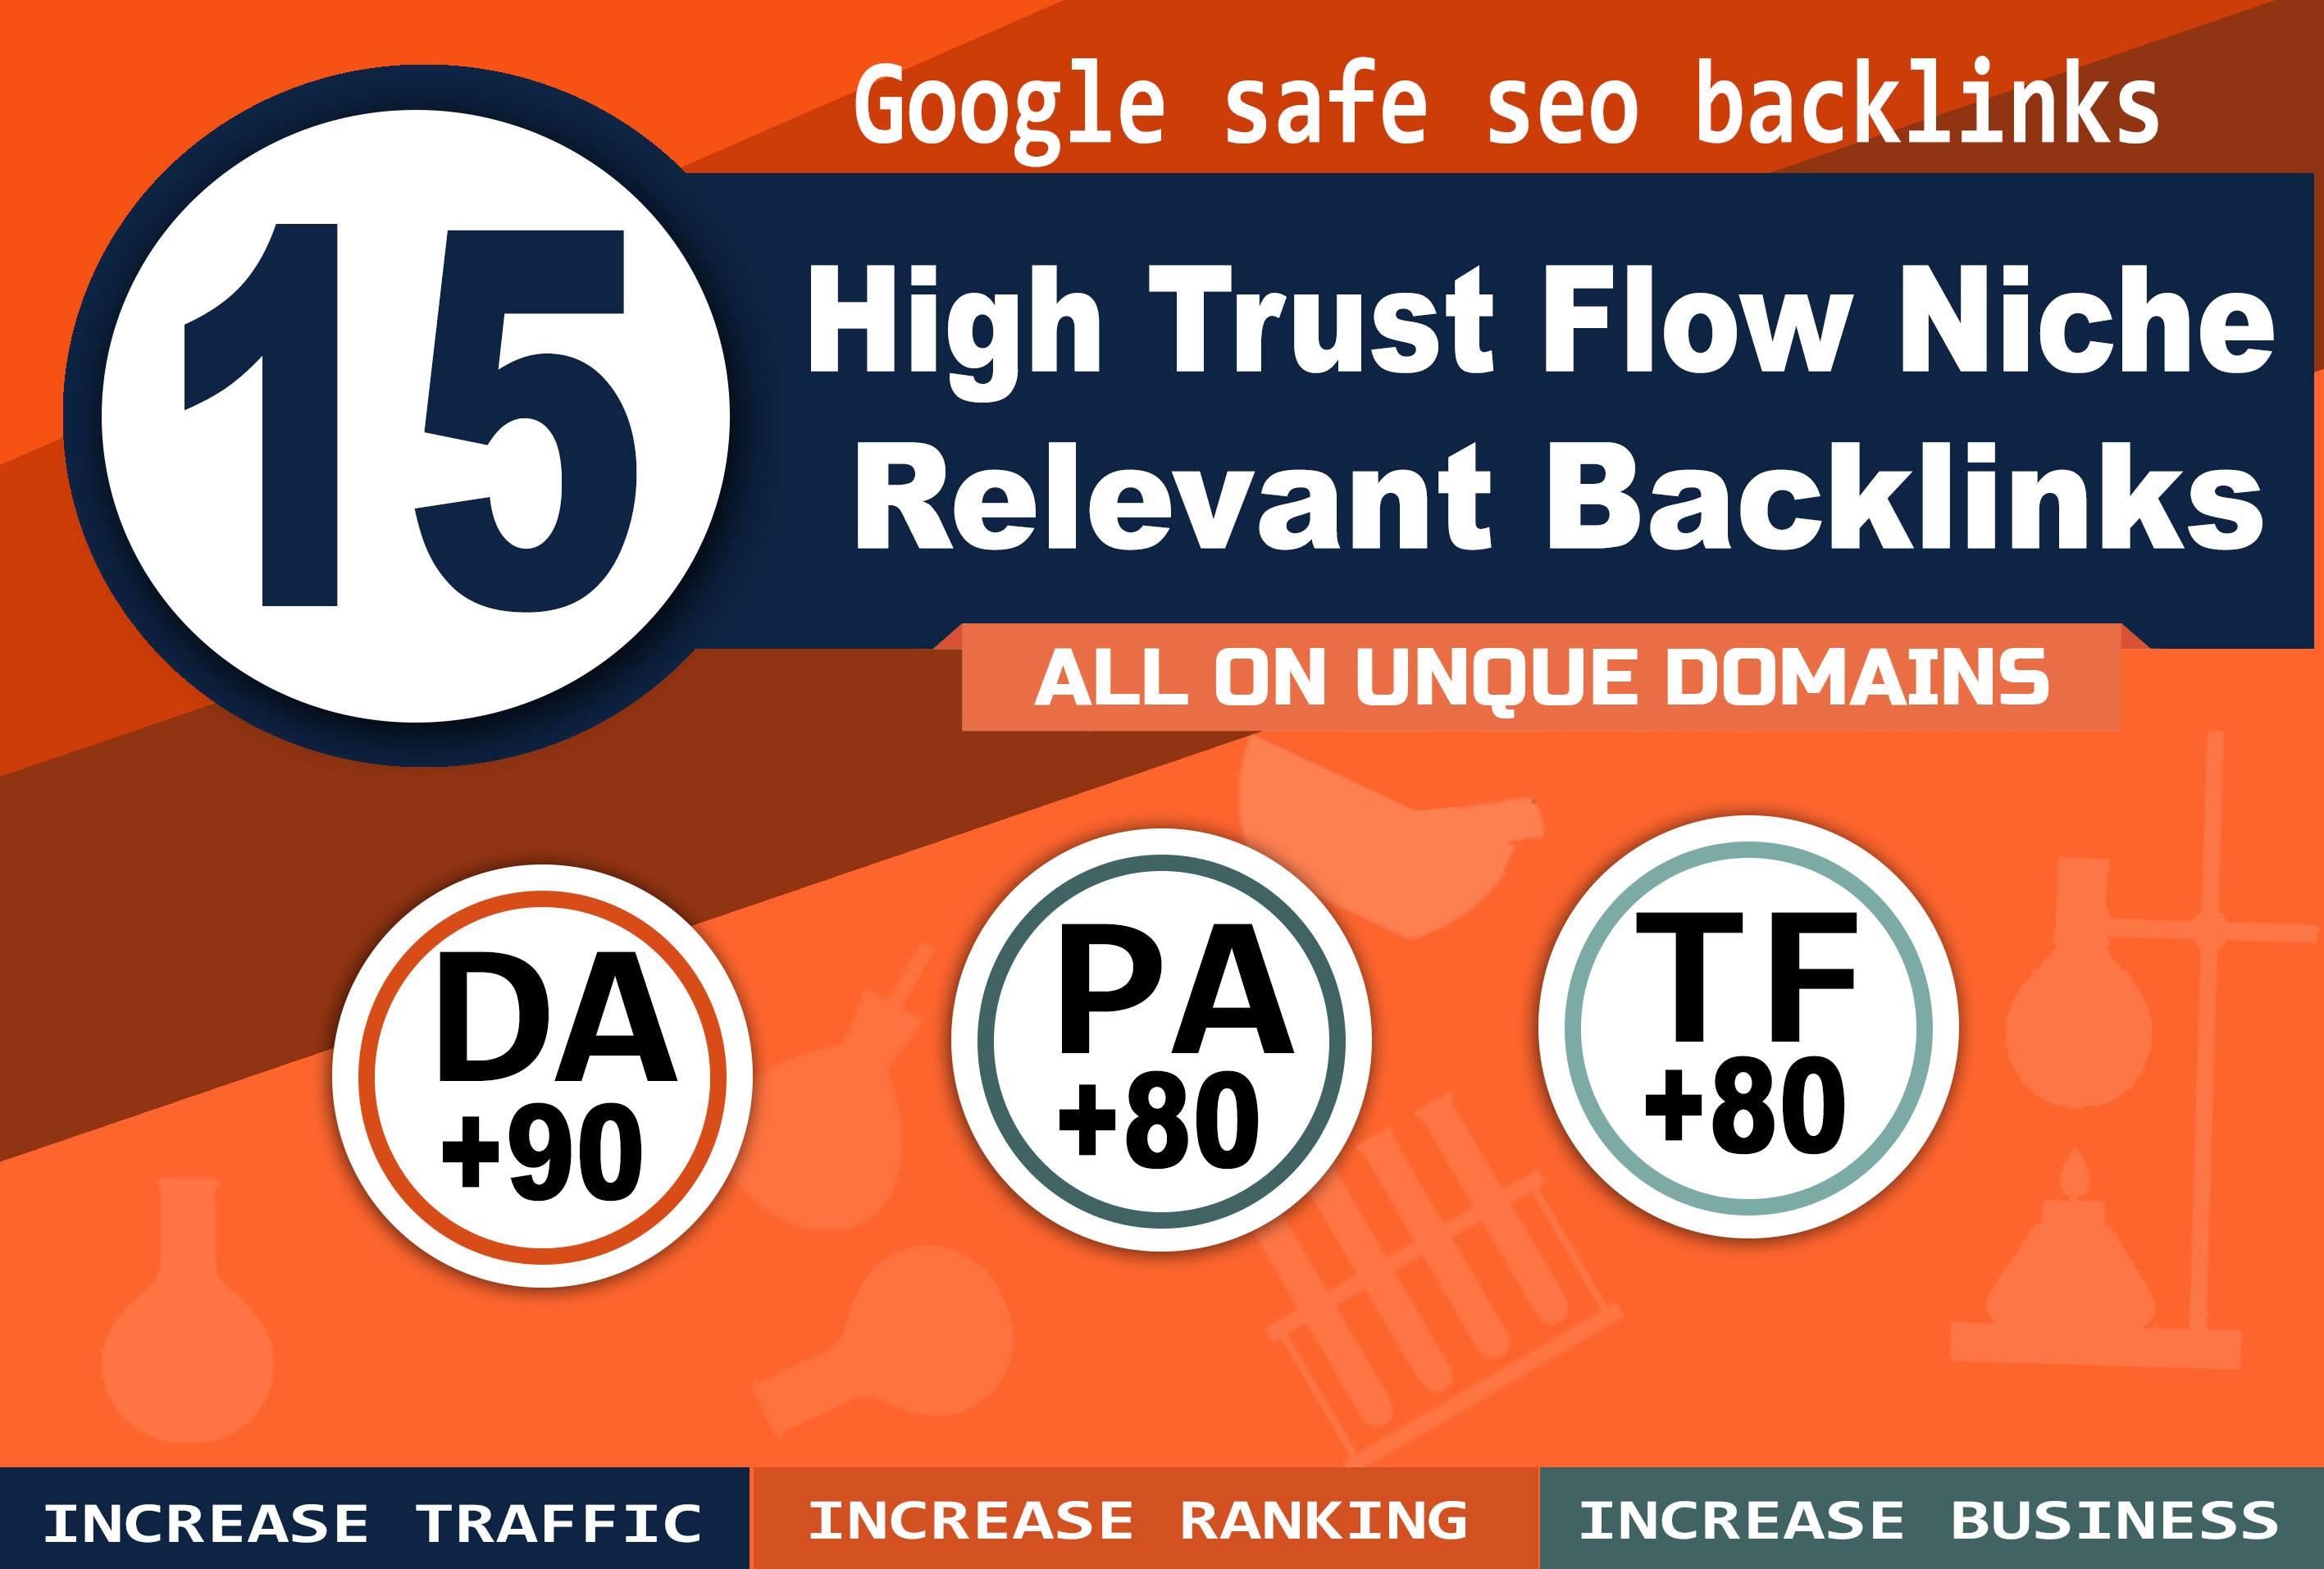 cheap manually 15 high authority DA +90 backlinks high trust flow +80